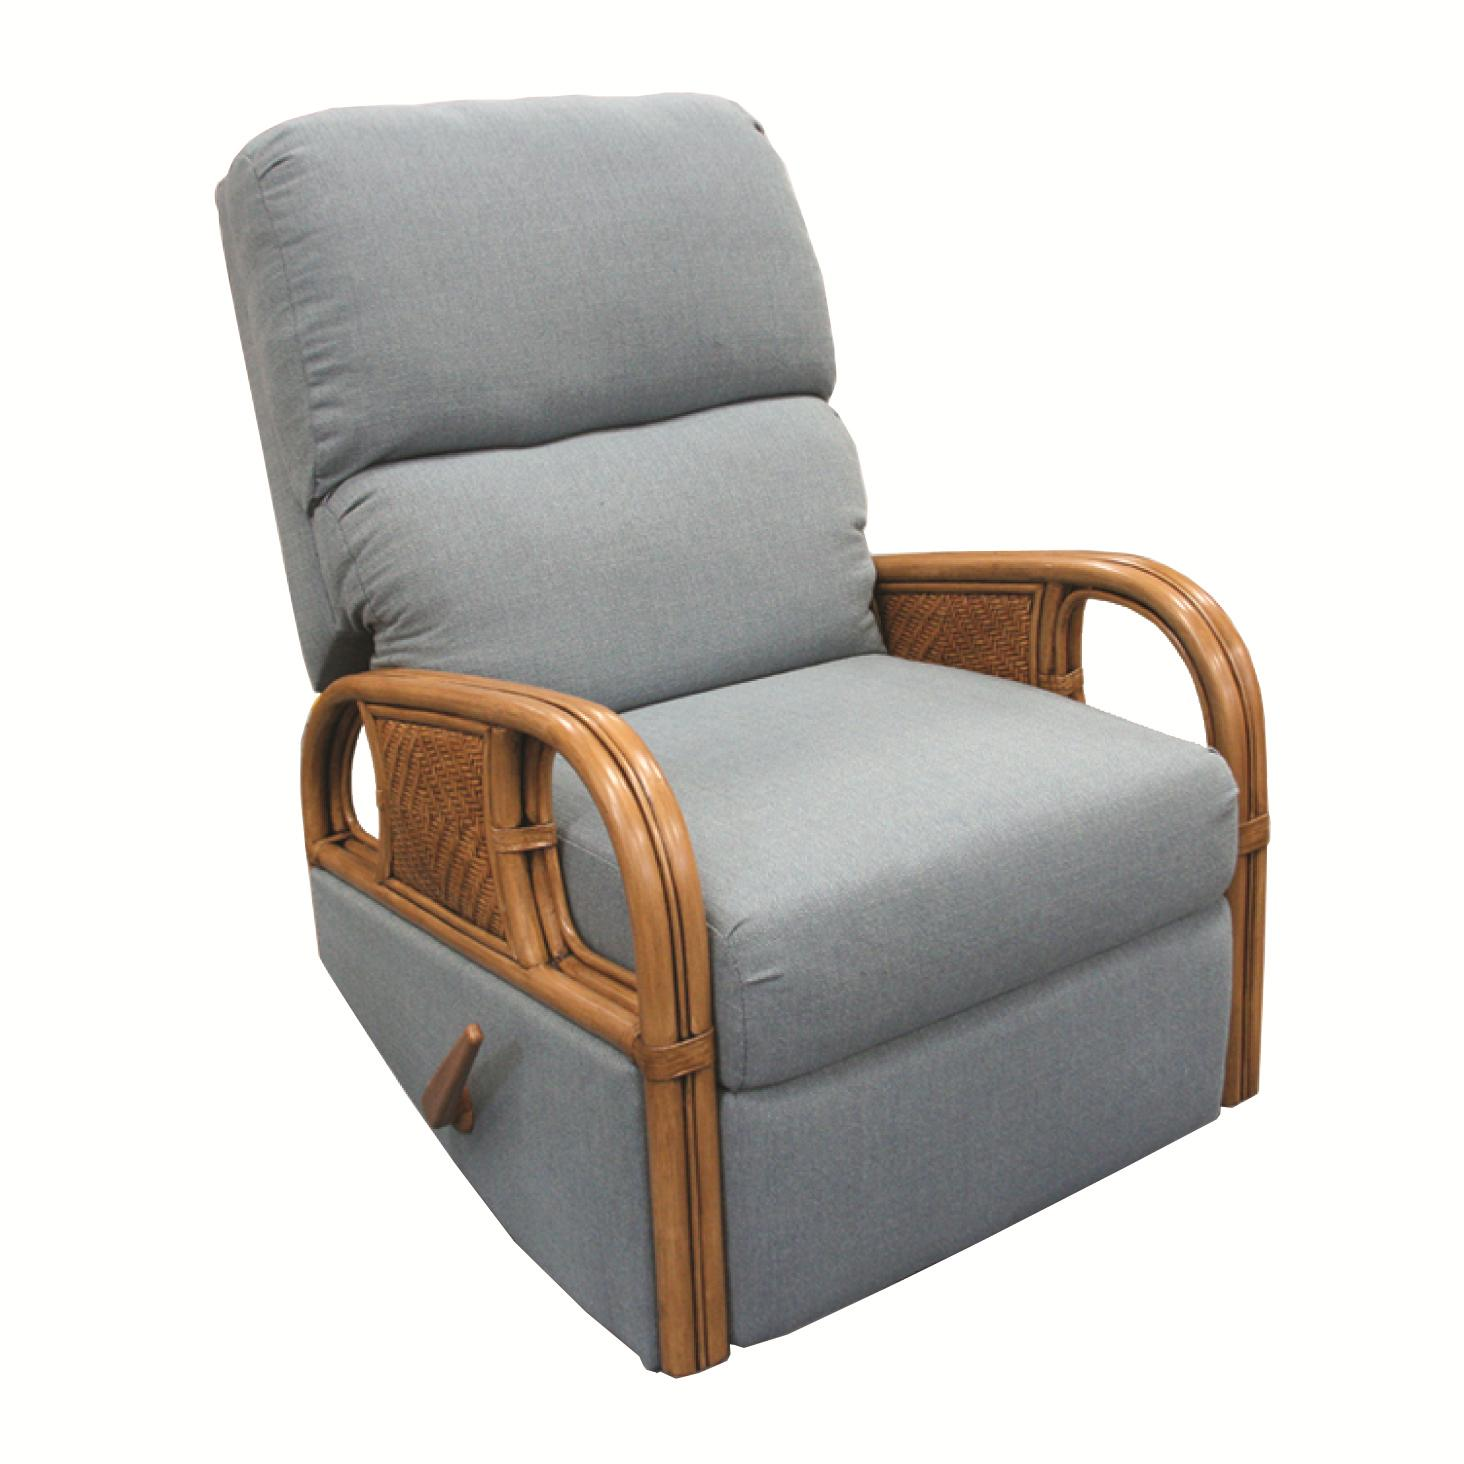 321 Collection Swivel Rocking Recliner by Capris Furniture at Esprit Decor Home Furnishings